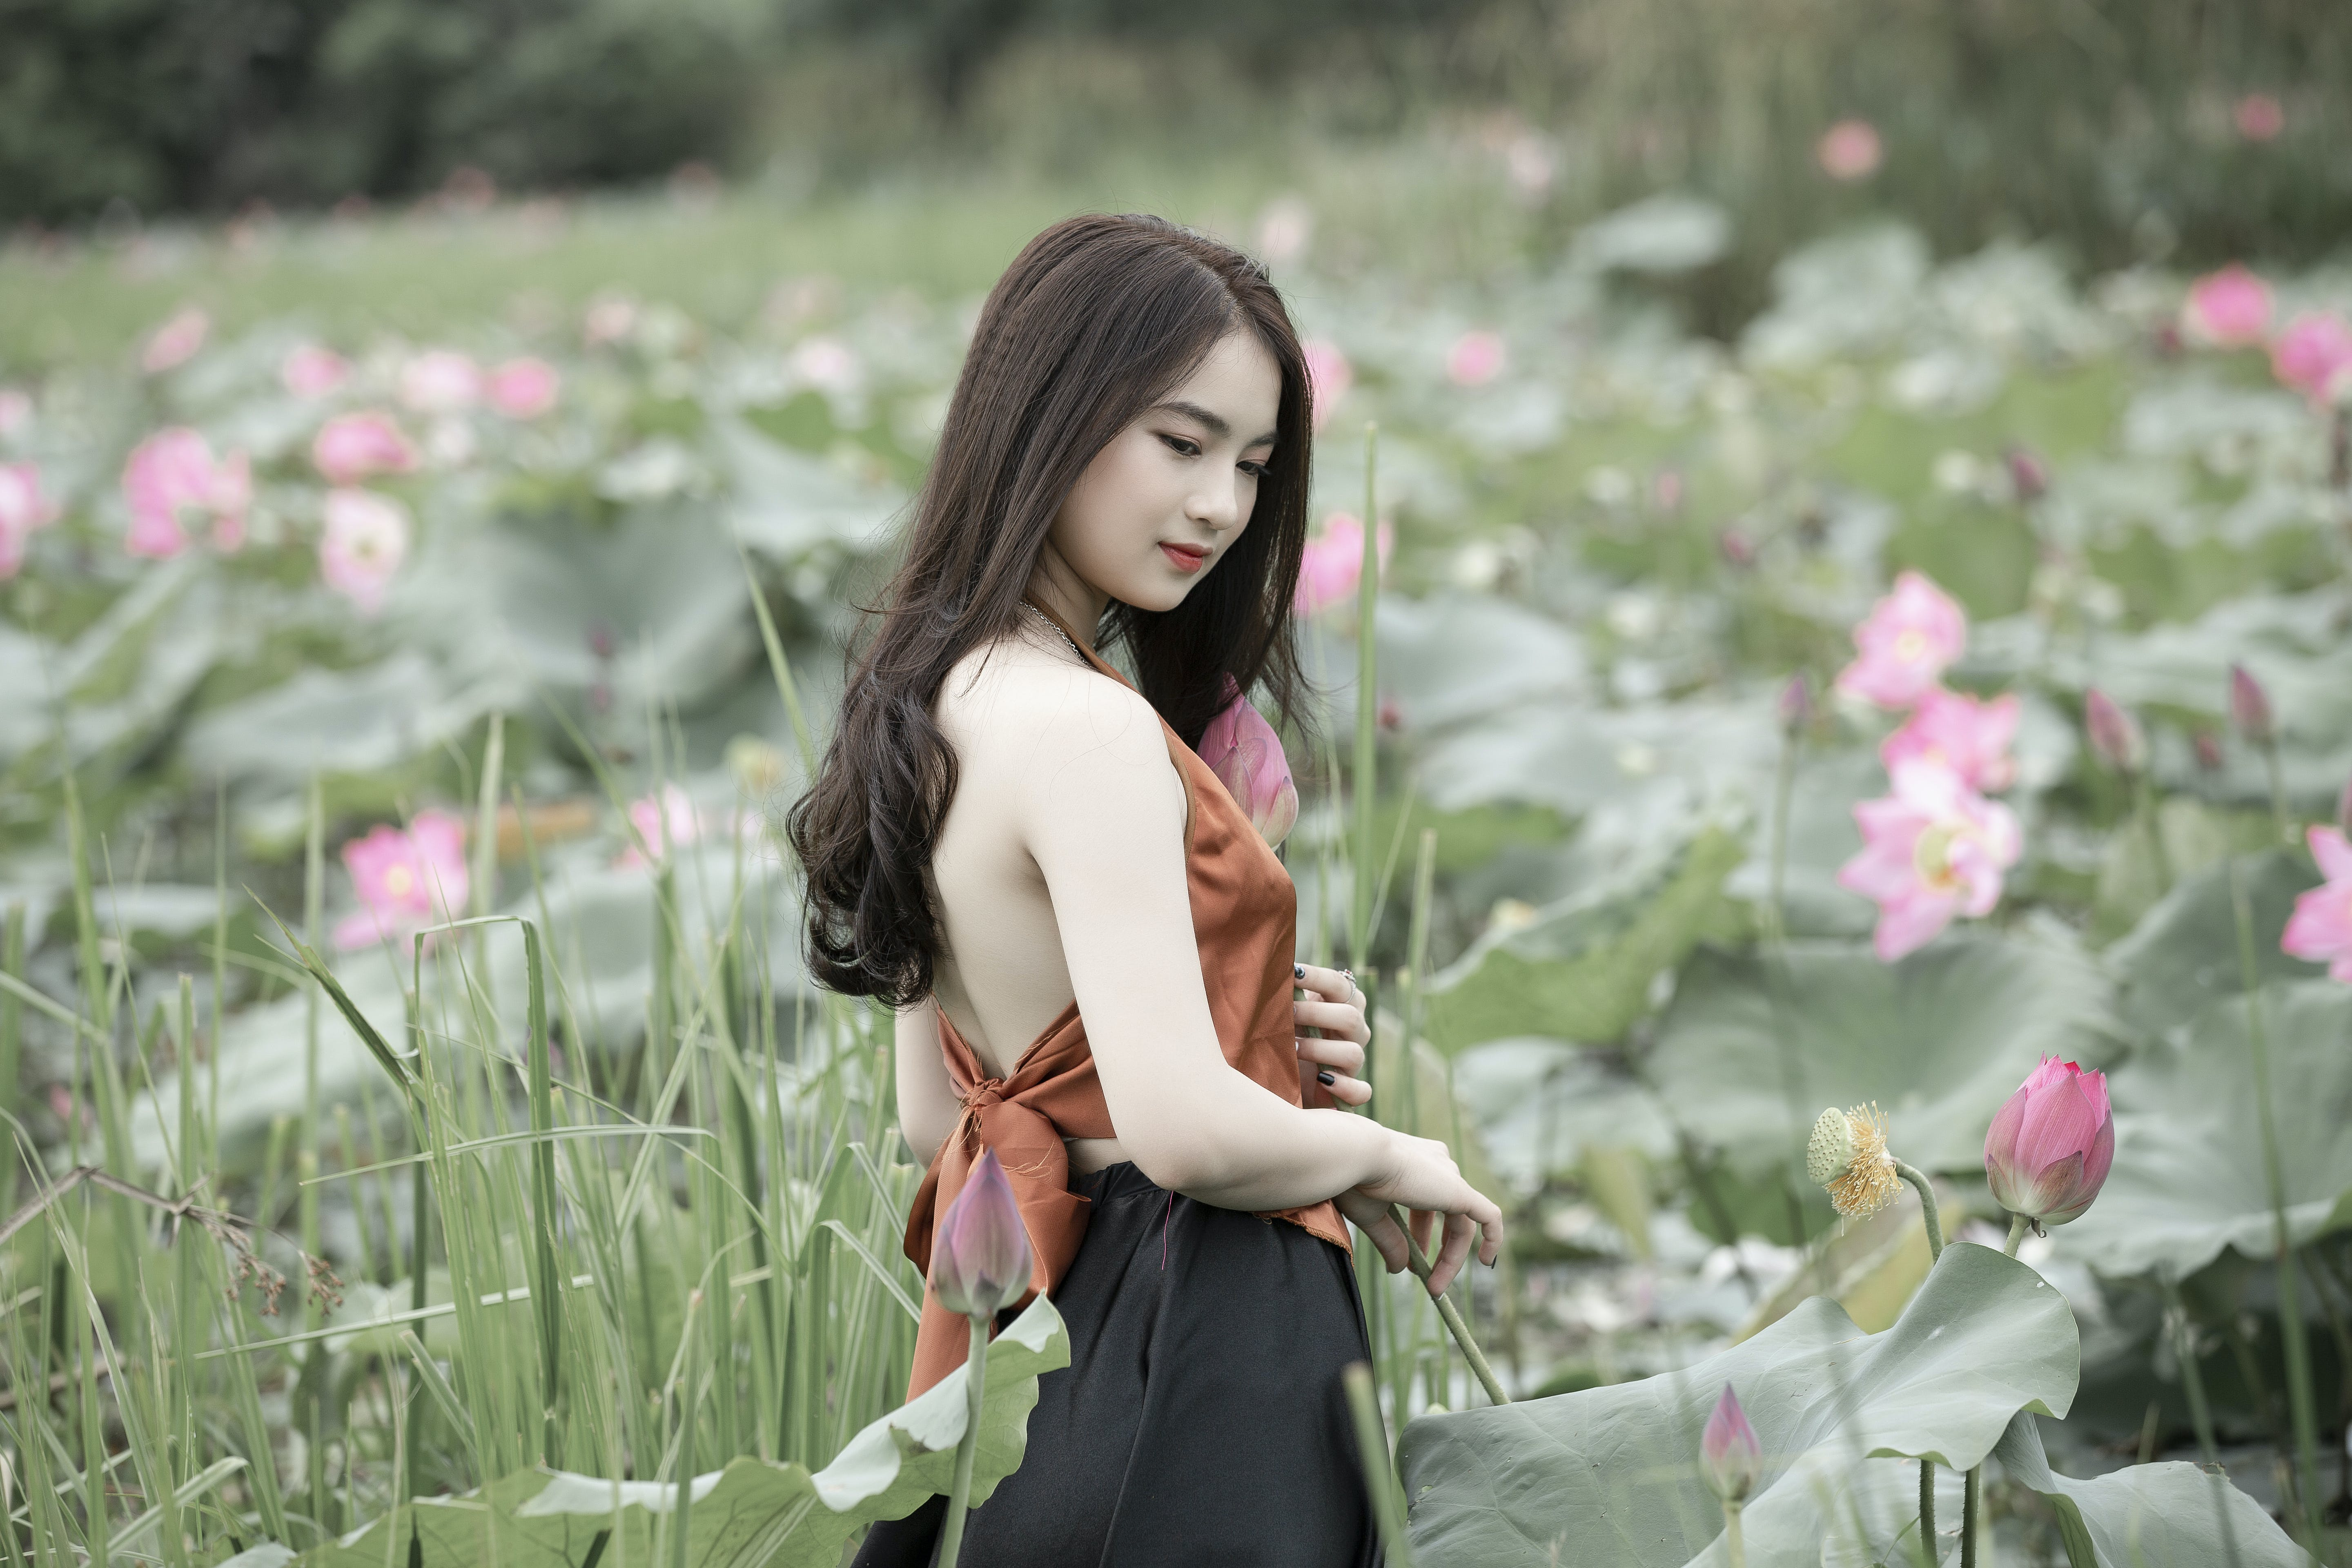 Woman Wearing Brown Top and Black Skirt in the Middle of Flower Field